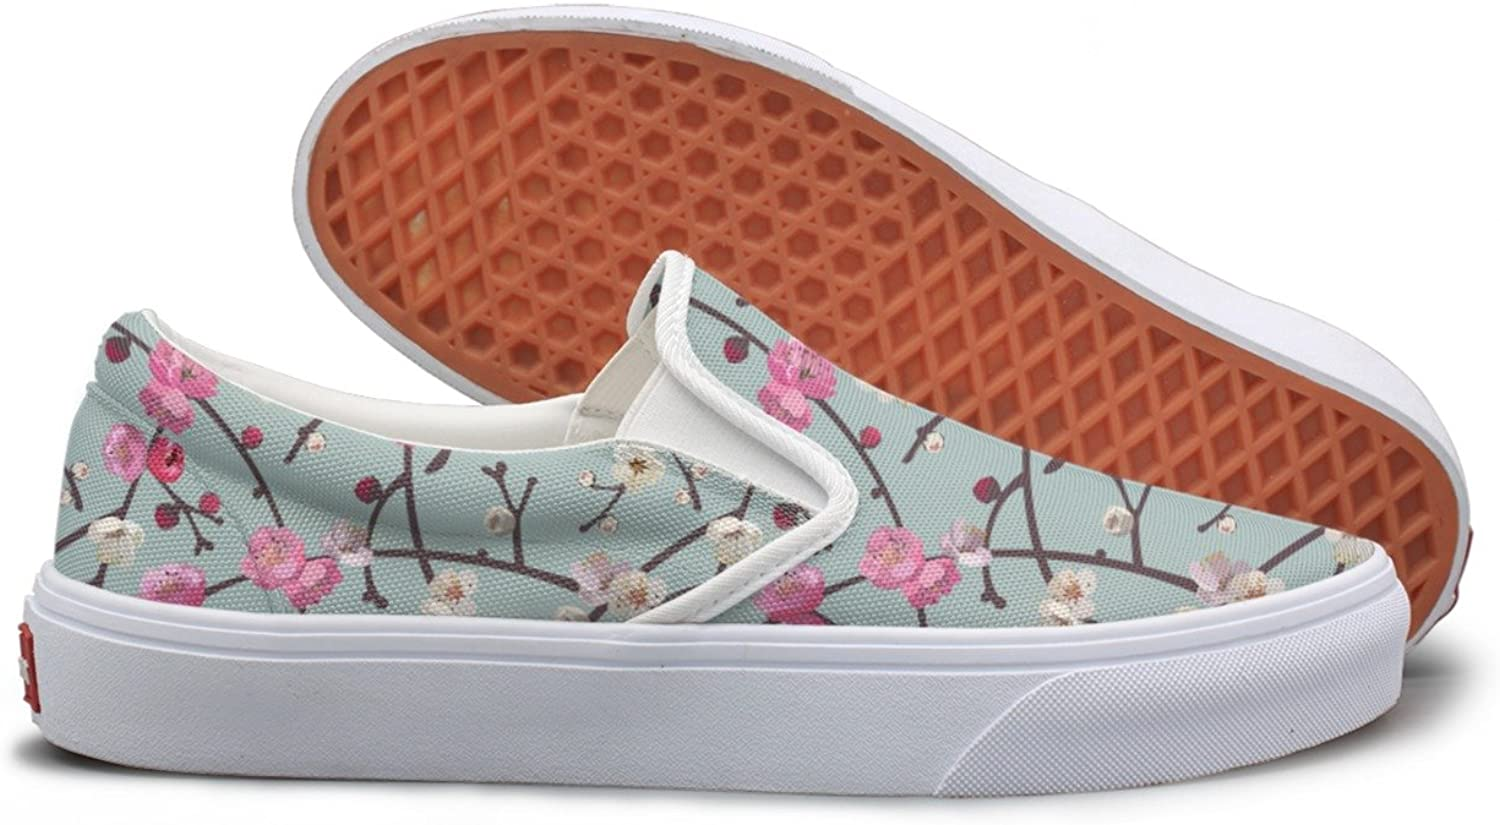 Cherry Blossom Branches Top Sneakers For Women